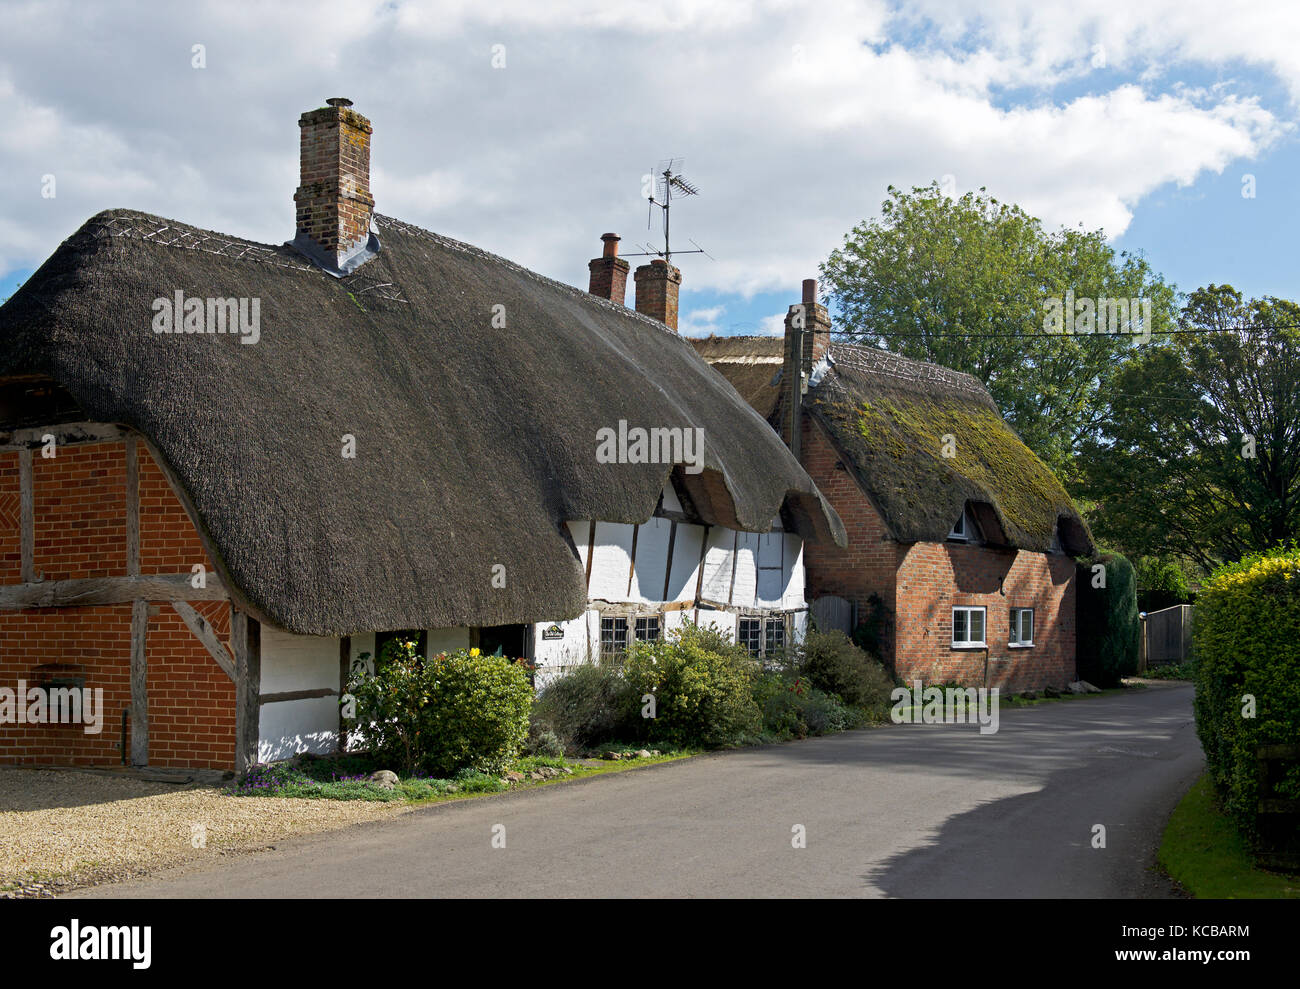 Thatched cottages in the village of East Garston, Berkshire, England UK - Stock Image